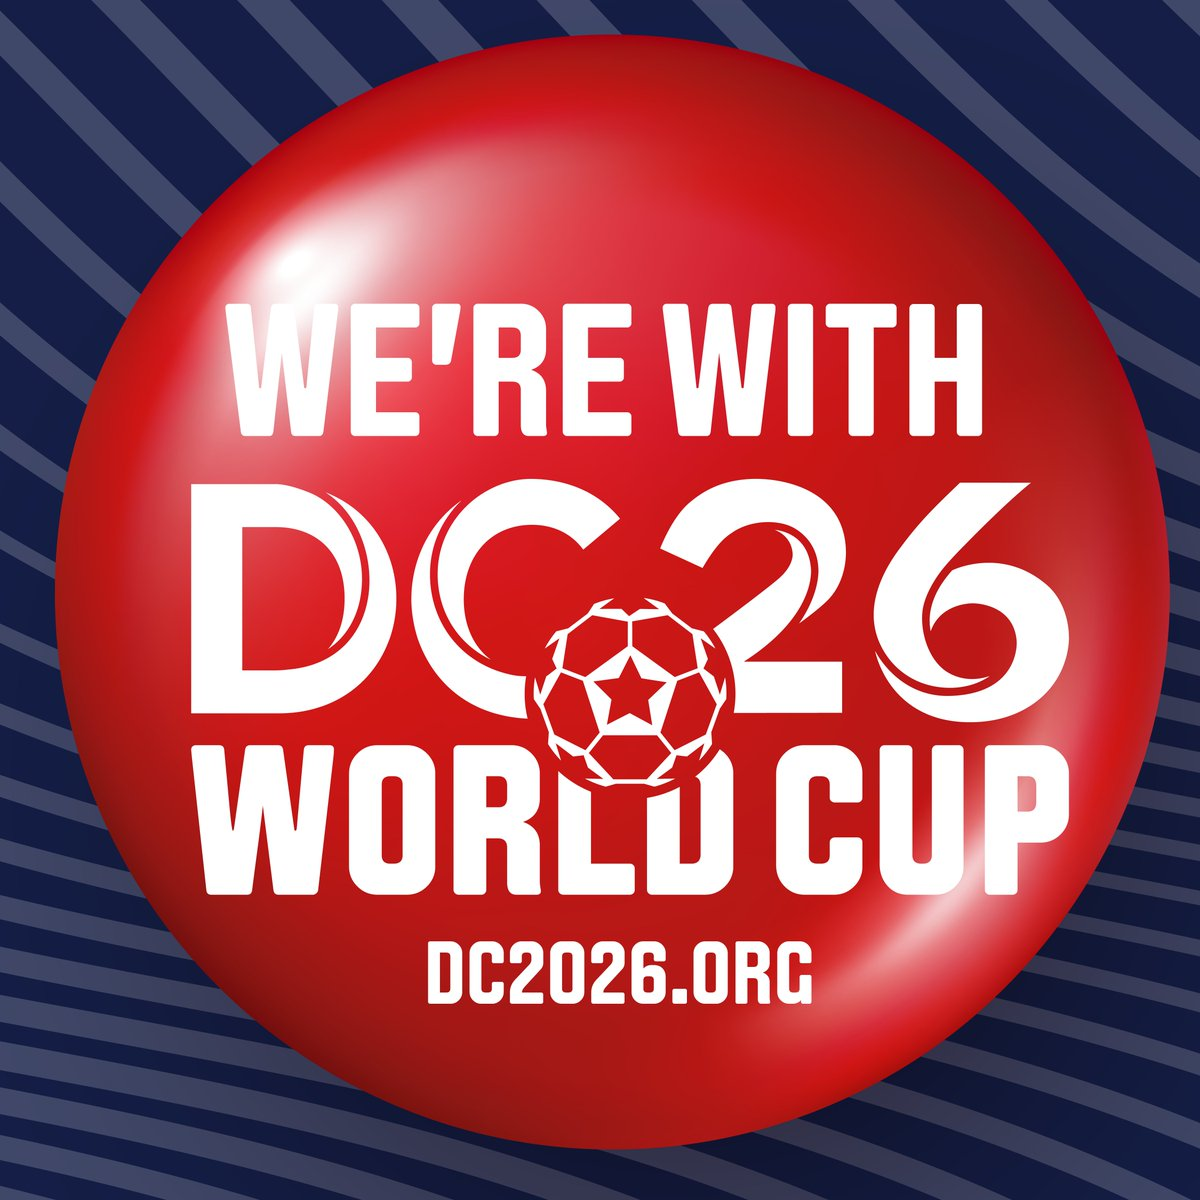 There's no better place to host the 2026 FIFA World Cup than the #DistrictofChampions!   Follow @DC2026 to show your support for the District's bid to host the 2026 FIFA World Cup!  Join us and the entire D.C. sports community by becoming a supporter at https://t.co/h3fSRCfZSd https://t.co/MW3PXnjZjS